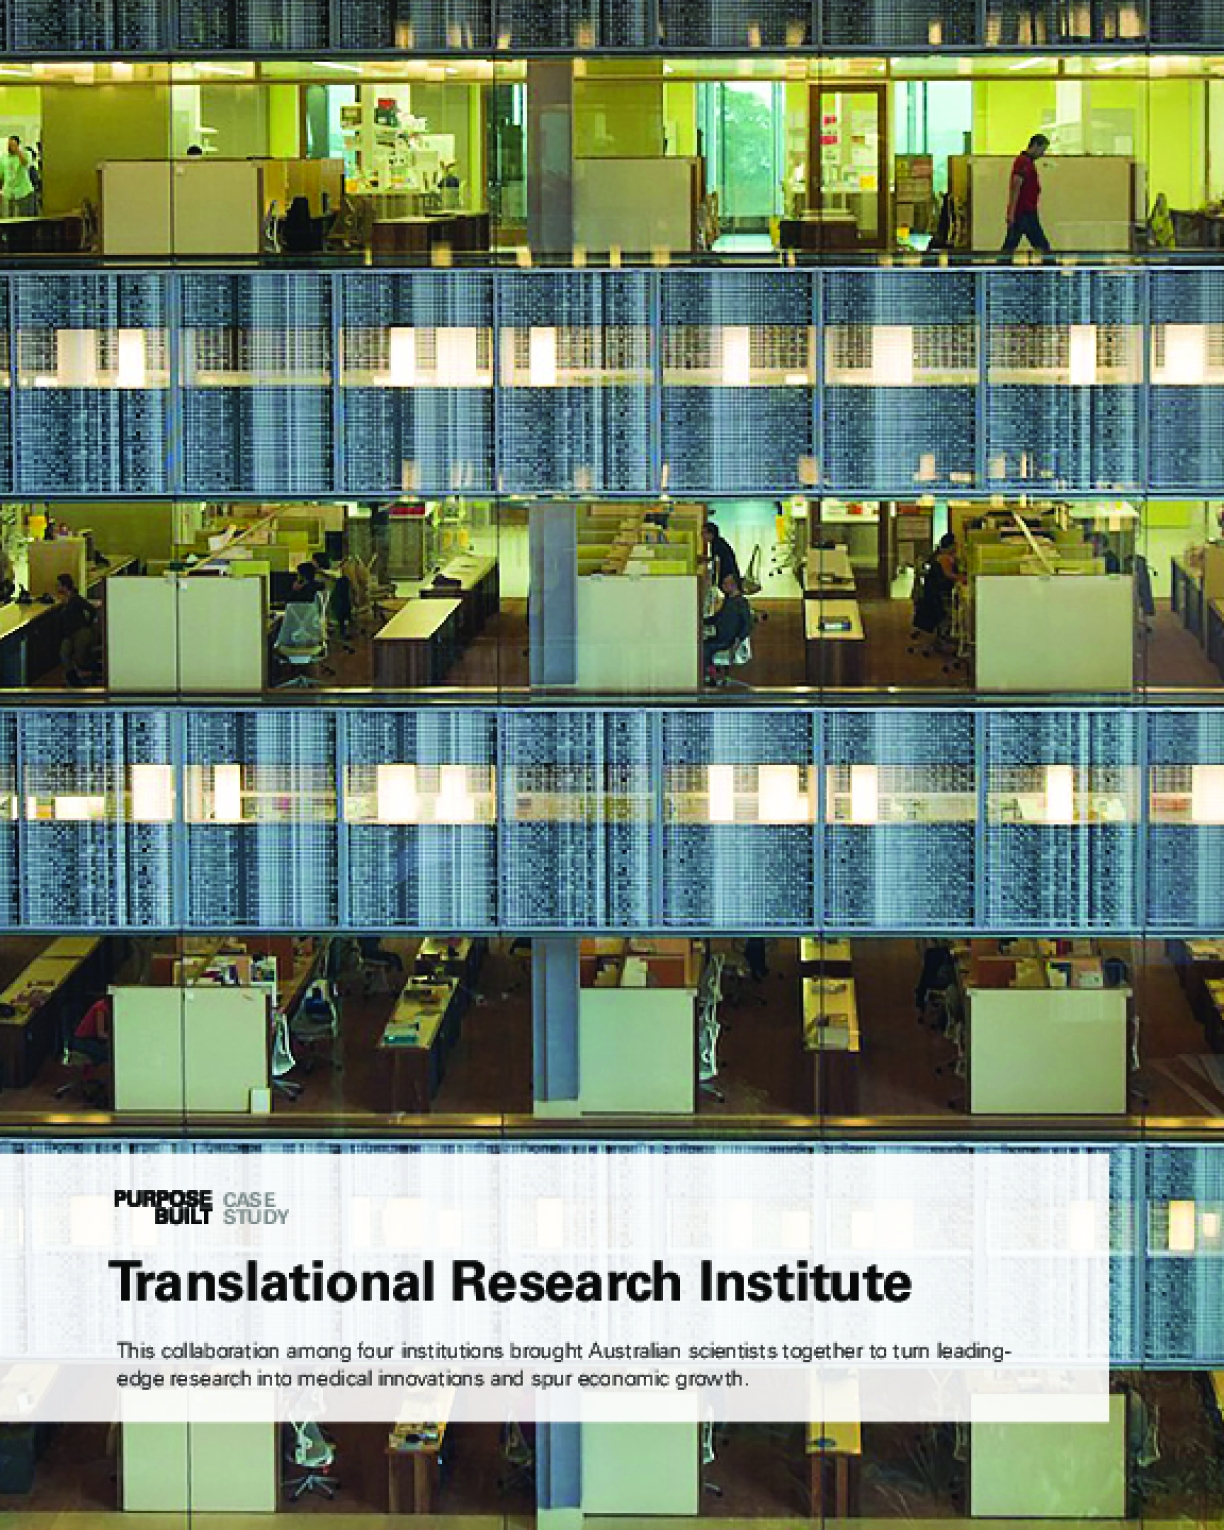 Purpose Built Case Study: Translational Research Institute